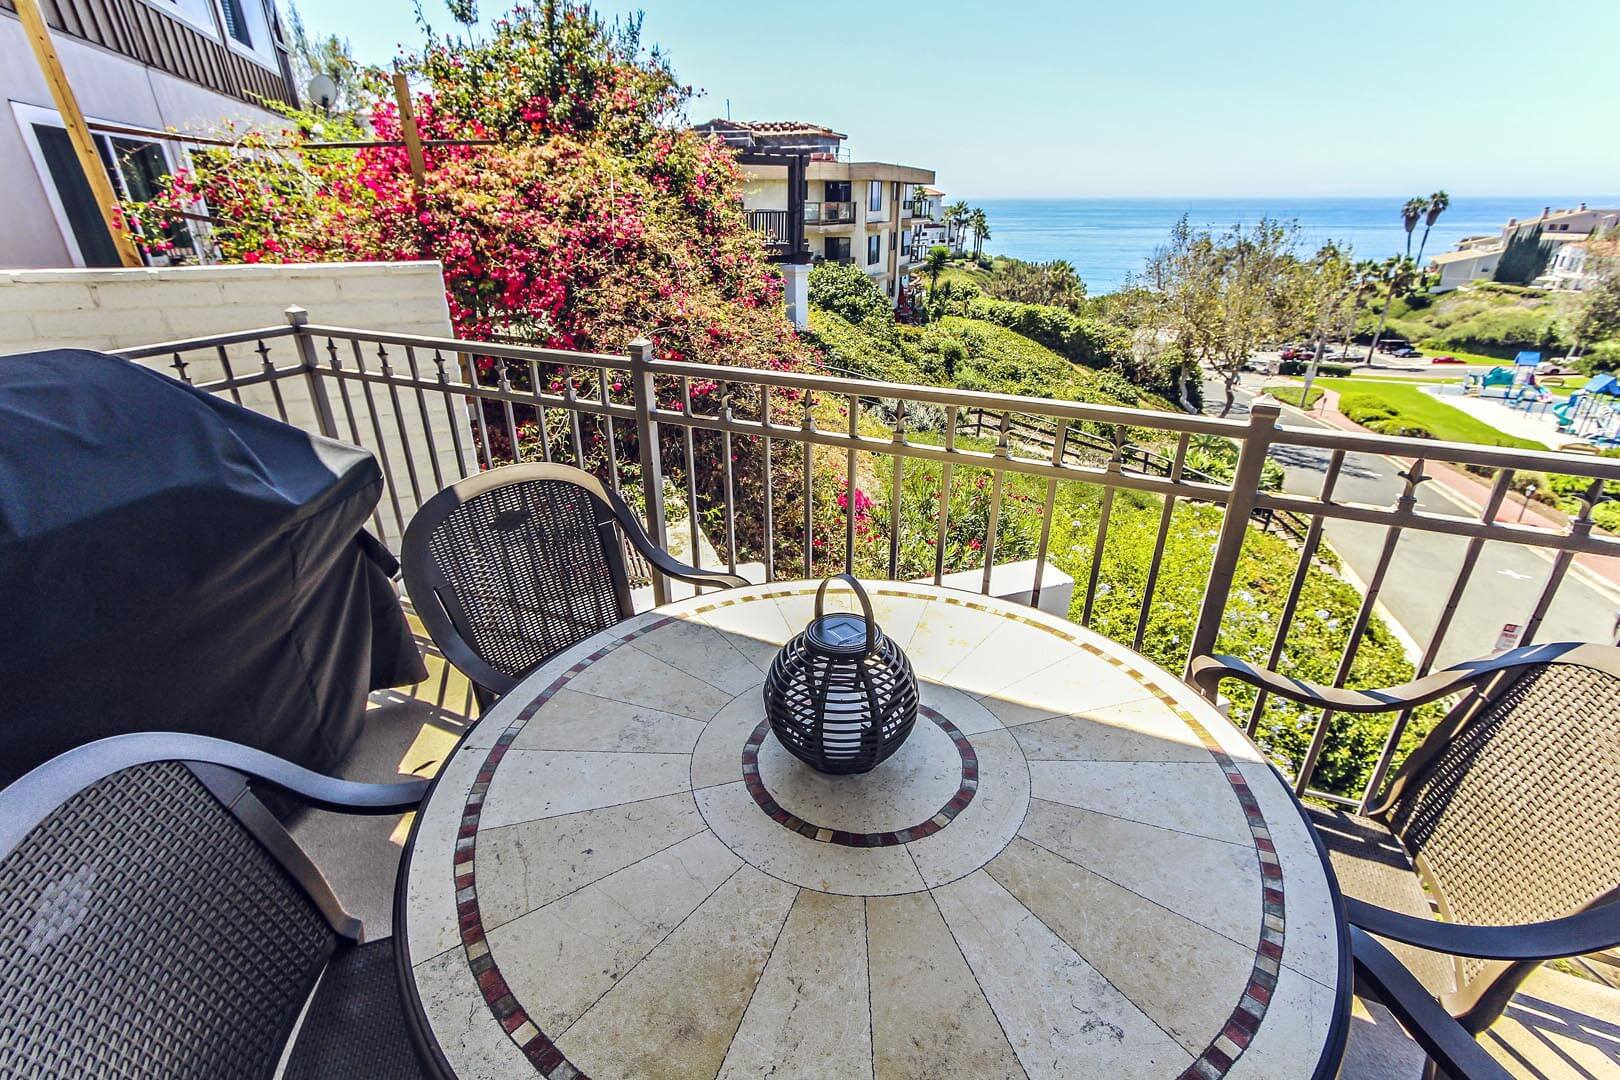 Four Seasons Pacifica Balcony View